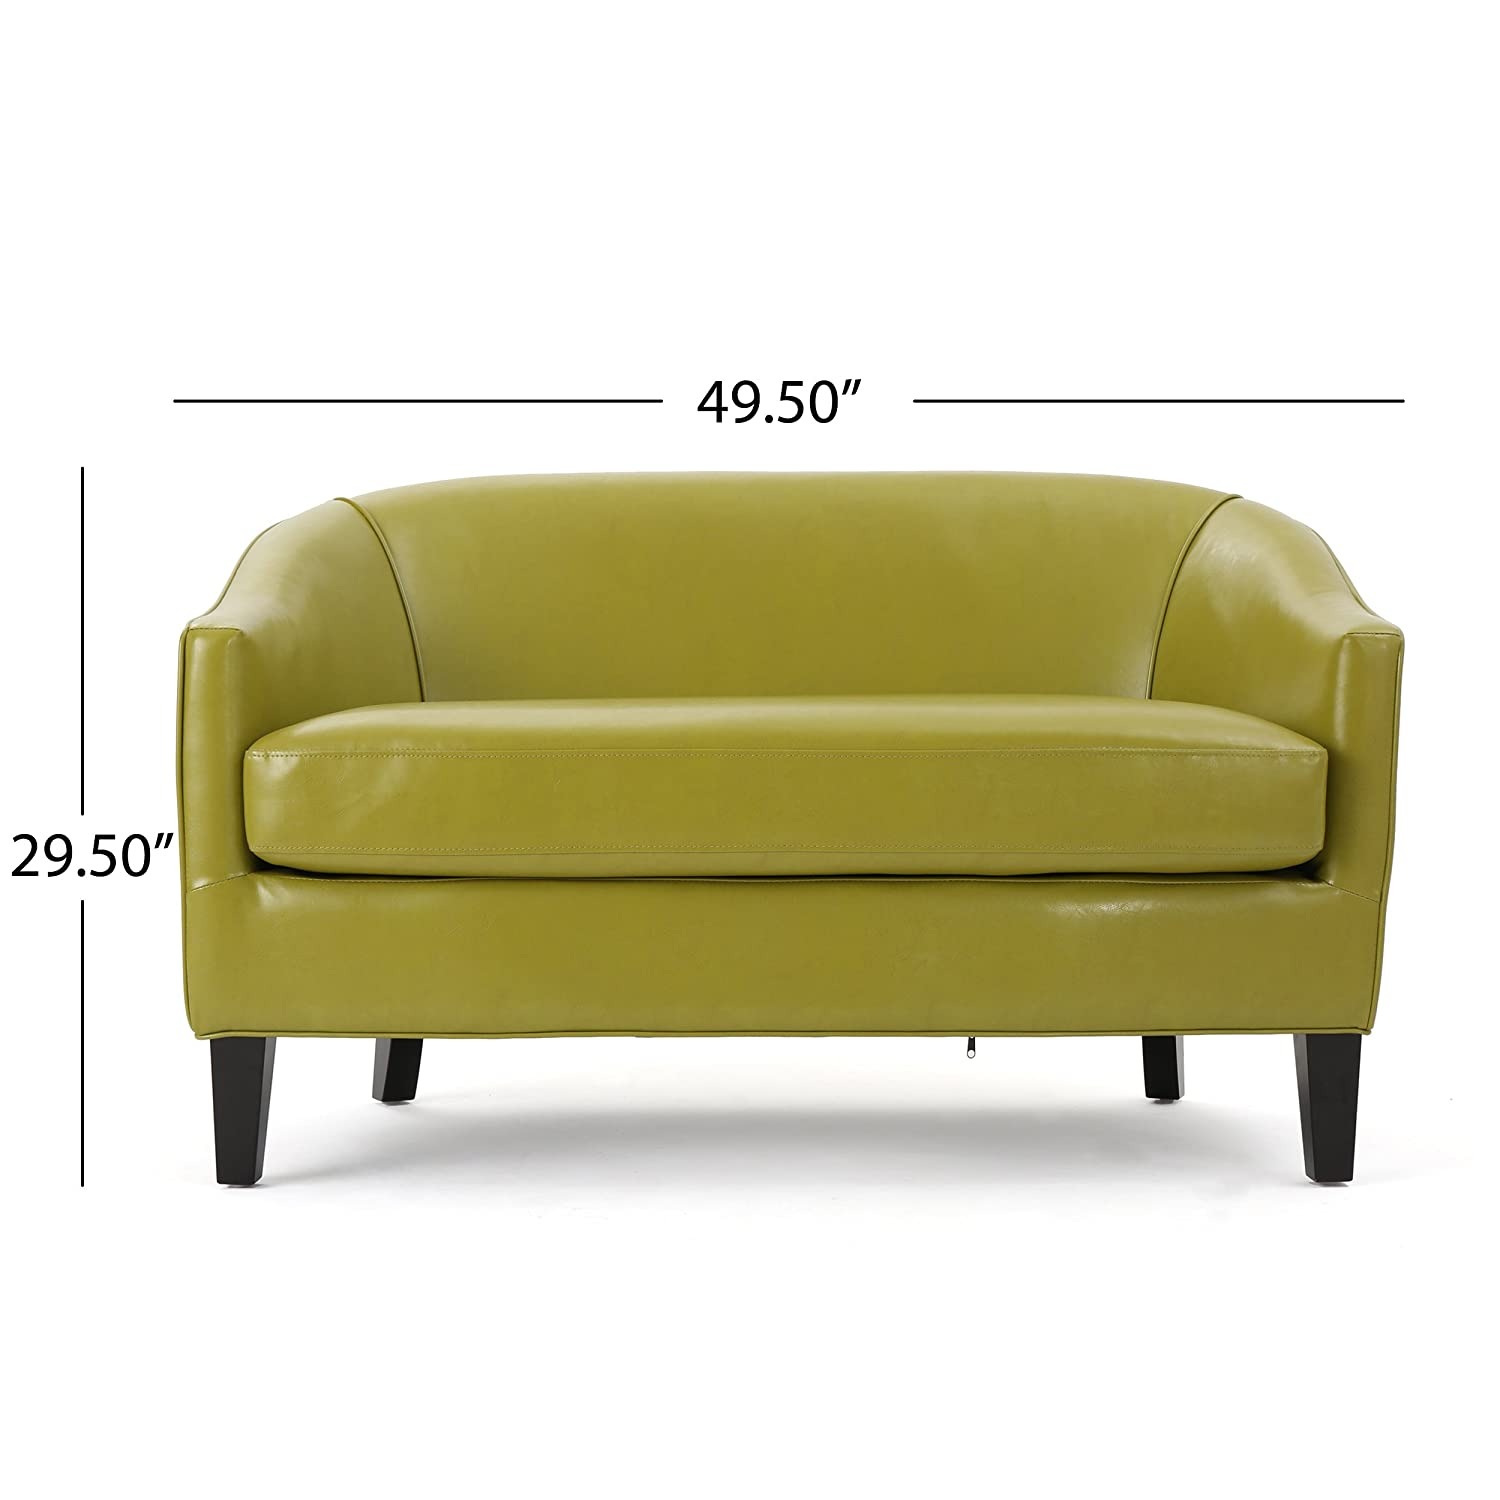 amazoncom isolde modern petite loveseat fabric or leather green leather kitchen u0026 dining